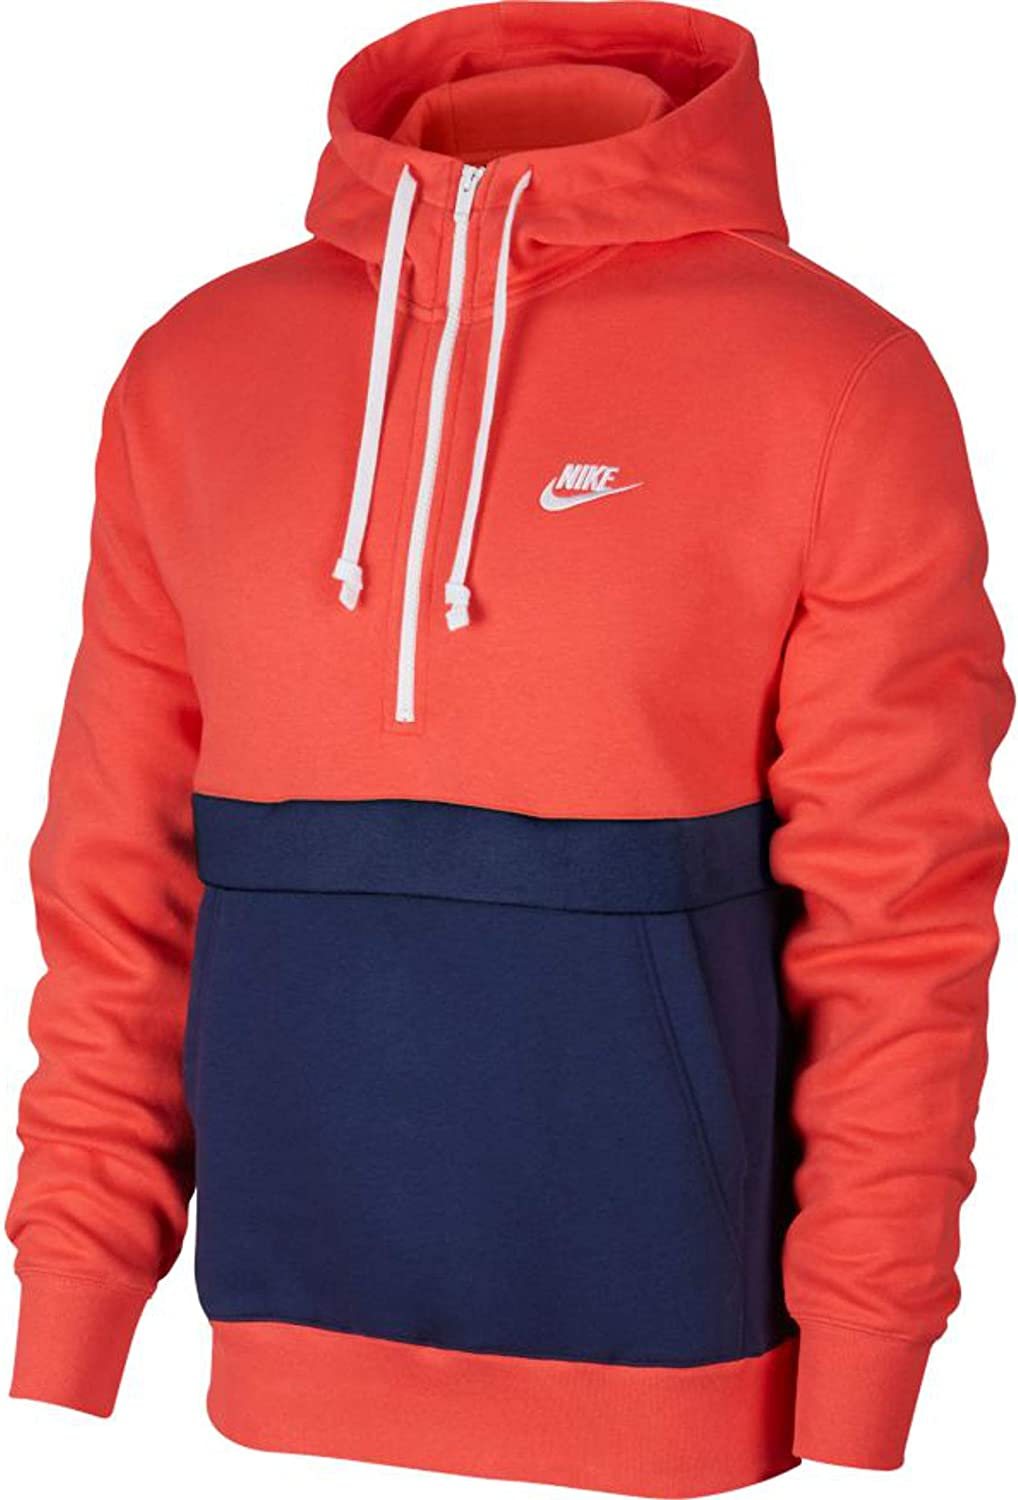 Nike Herren Club Half Zip Fleece Hoody